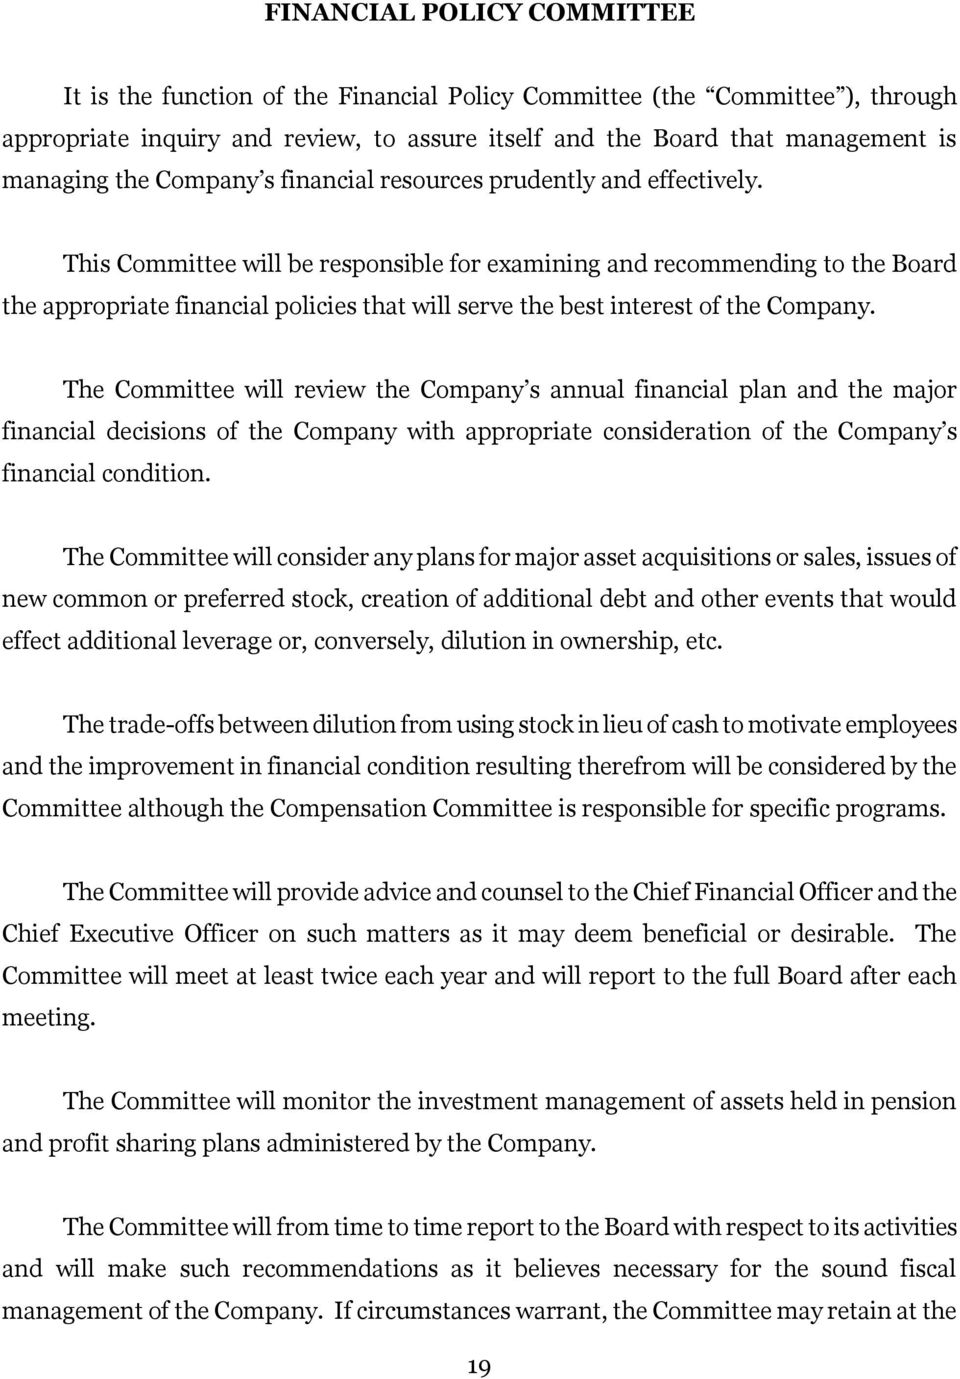 This Committee will be responsible for examining and recommending to the Board the appropriate financial policies that will serve the best interest of the Company.